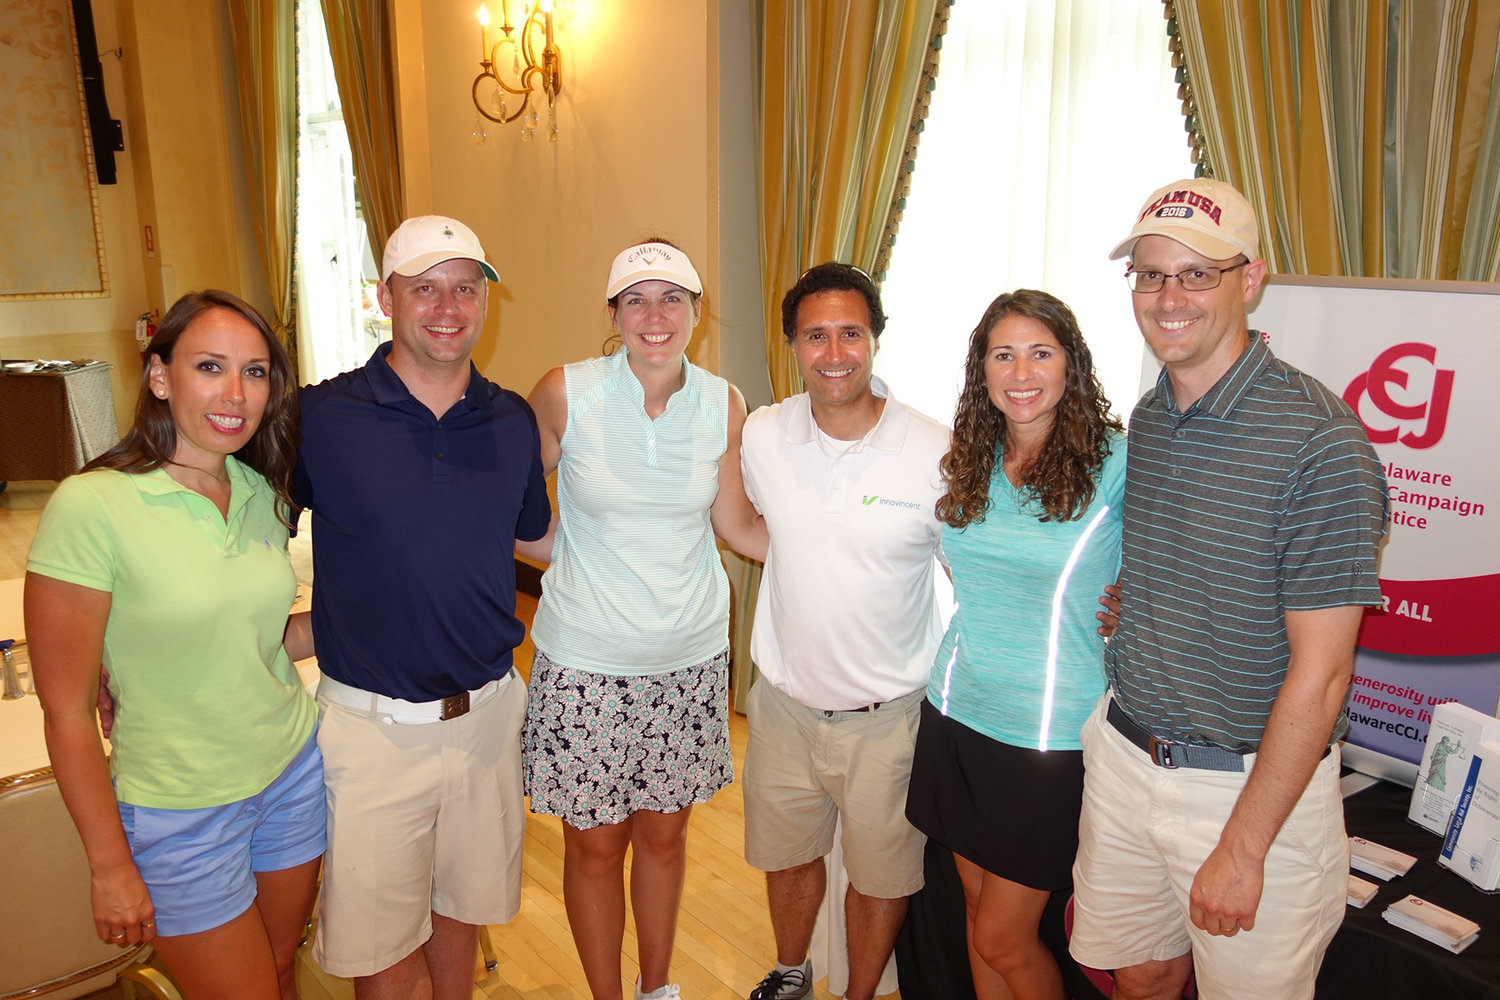 Committee Chairs (left to right): Jennifer Rutter, Esquire, Kevin Conner, Esquire, Julie Yeager, Esquire, Charlie Vincent, Esquire, Jaclyn Quinn, Esquire and Jason Stoehr.